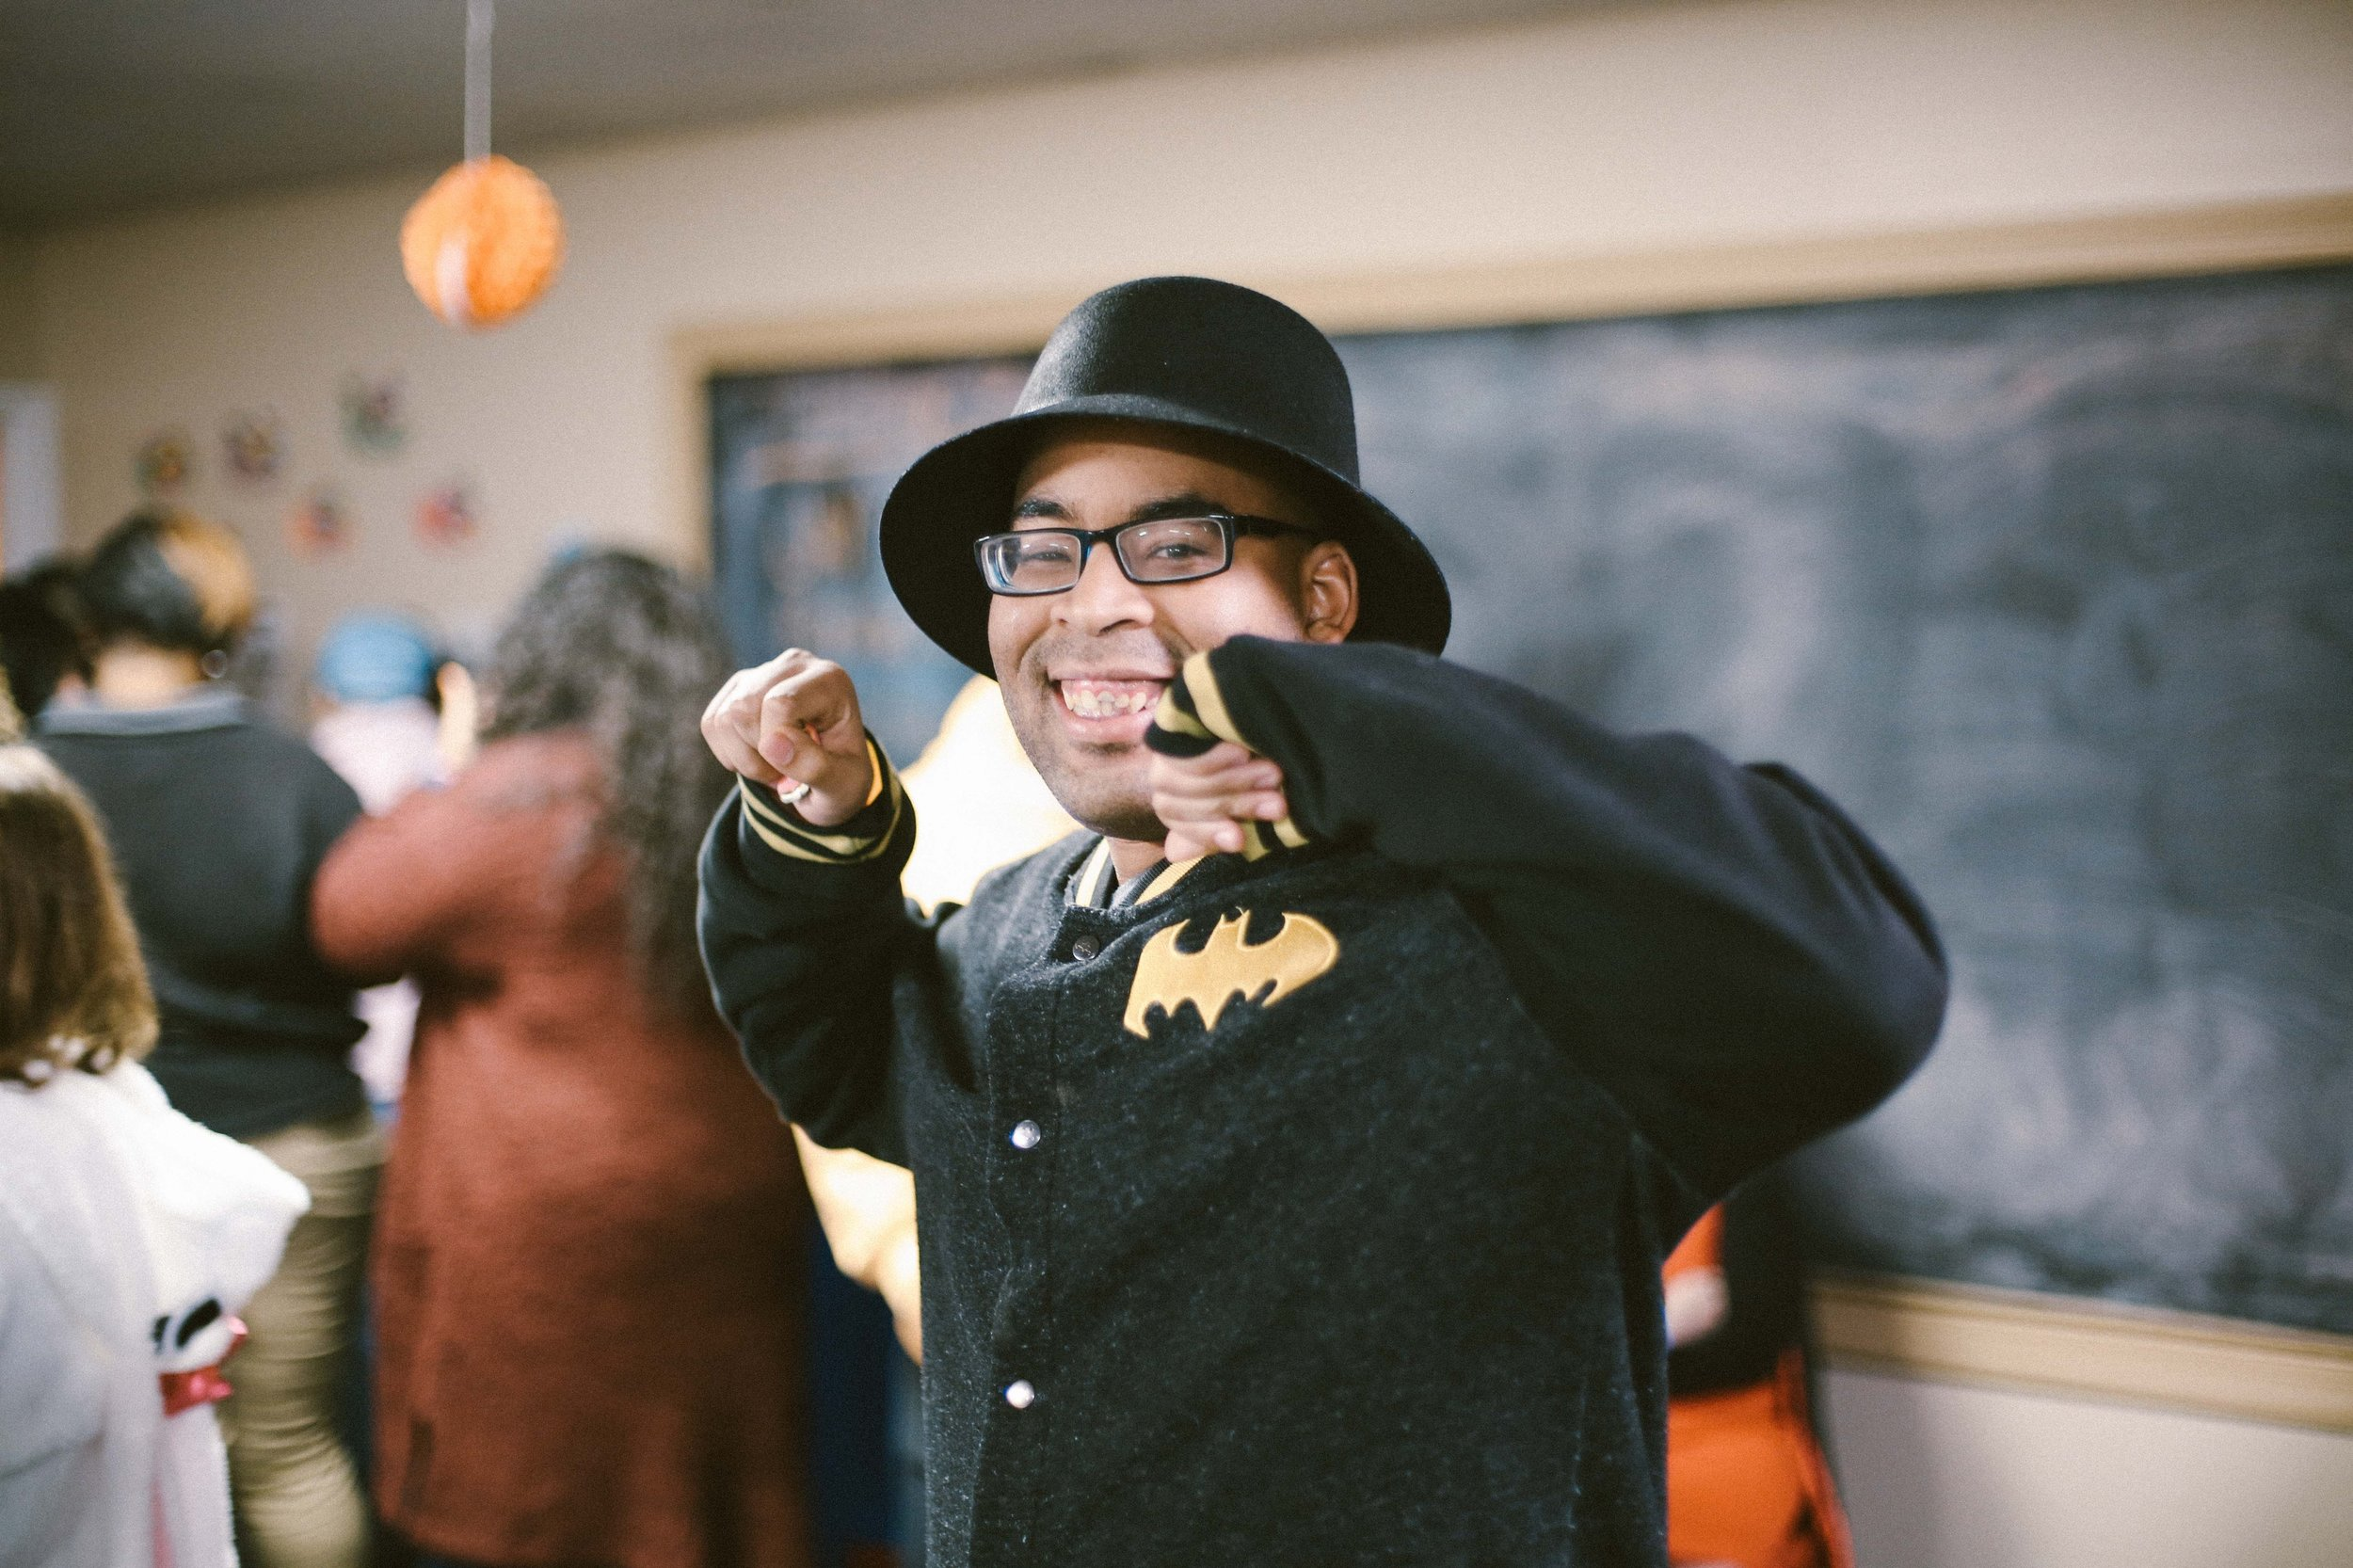 Jamar looking good with his Batman jacket!